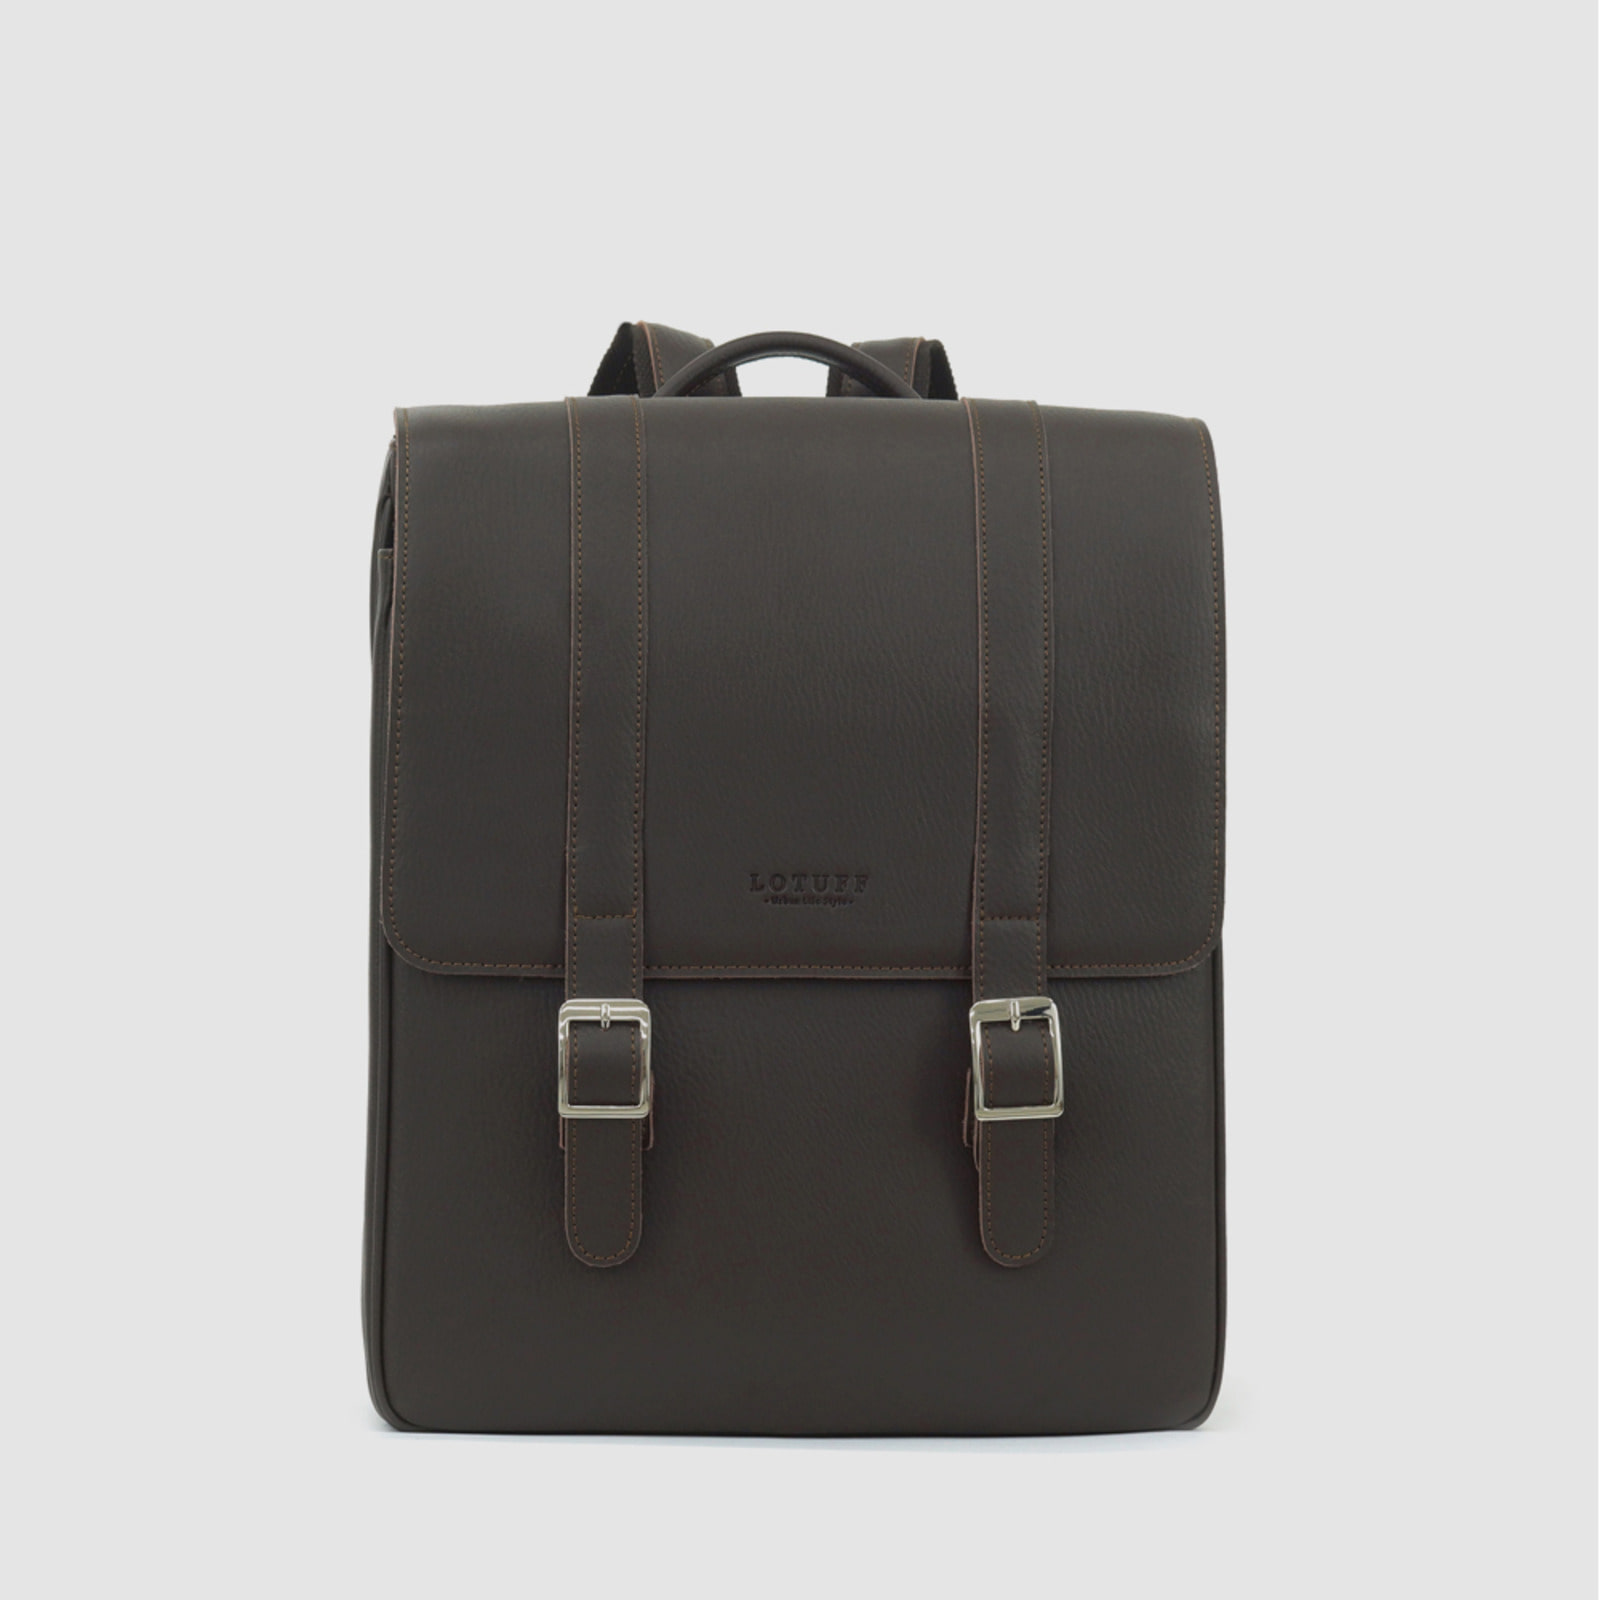 (3차 예약구매) LO-1748 DBR (DEEP BROWN)